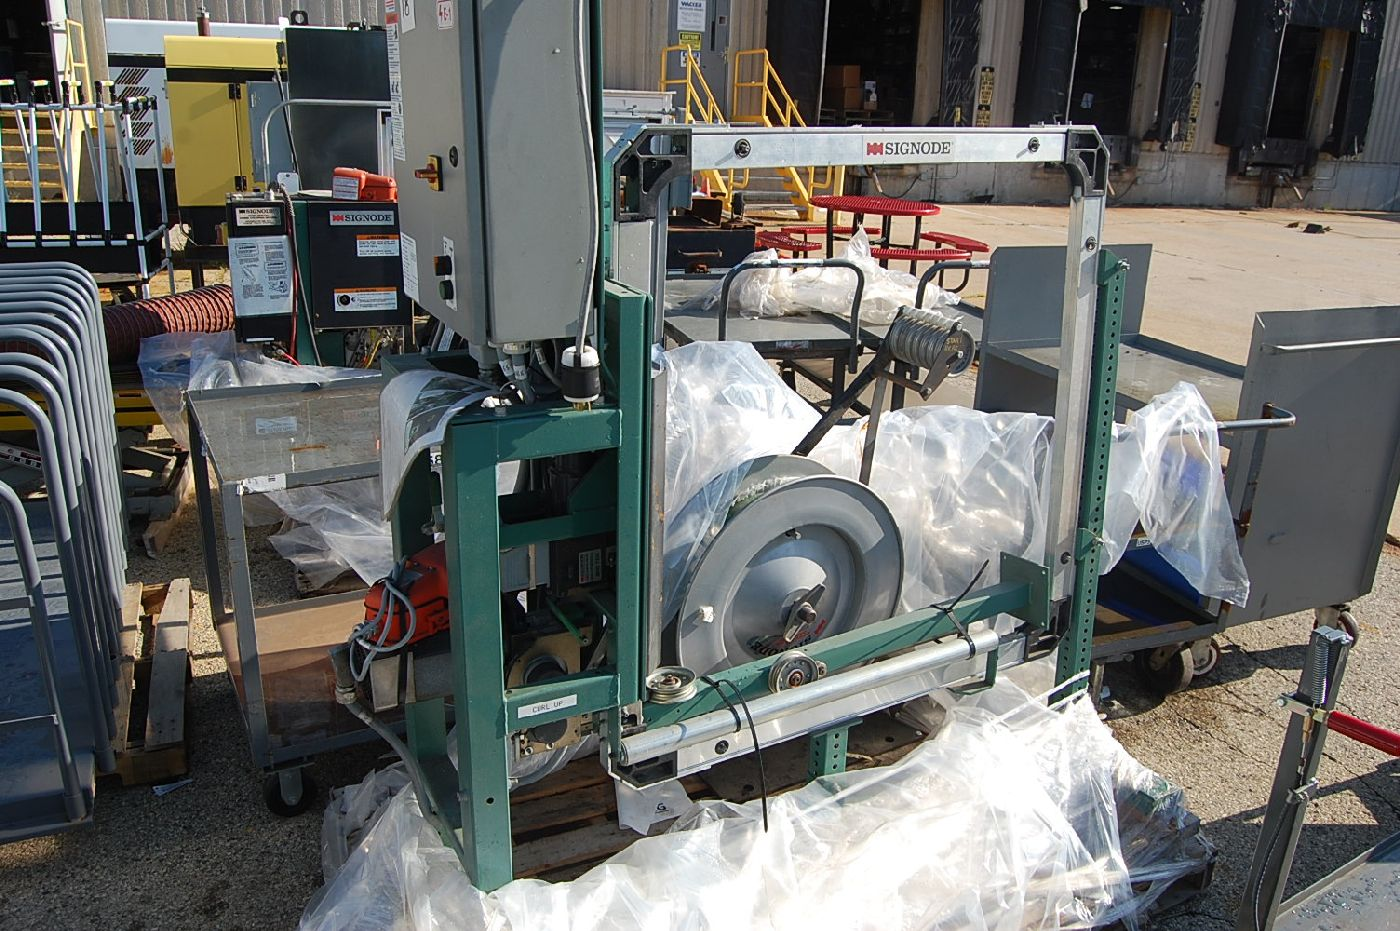 Signode Model MOD 710 Power Strapping Machine